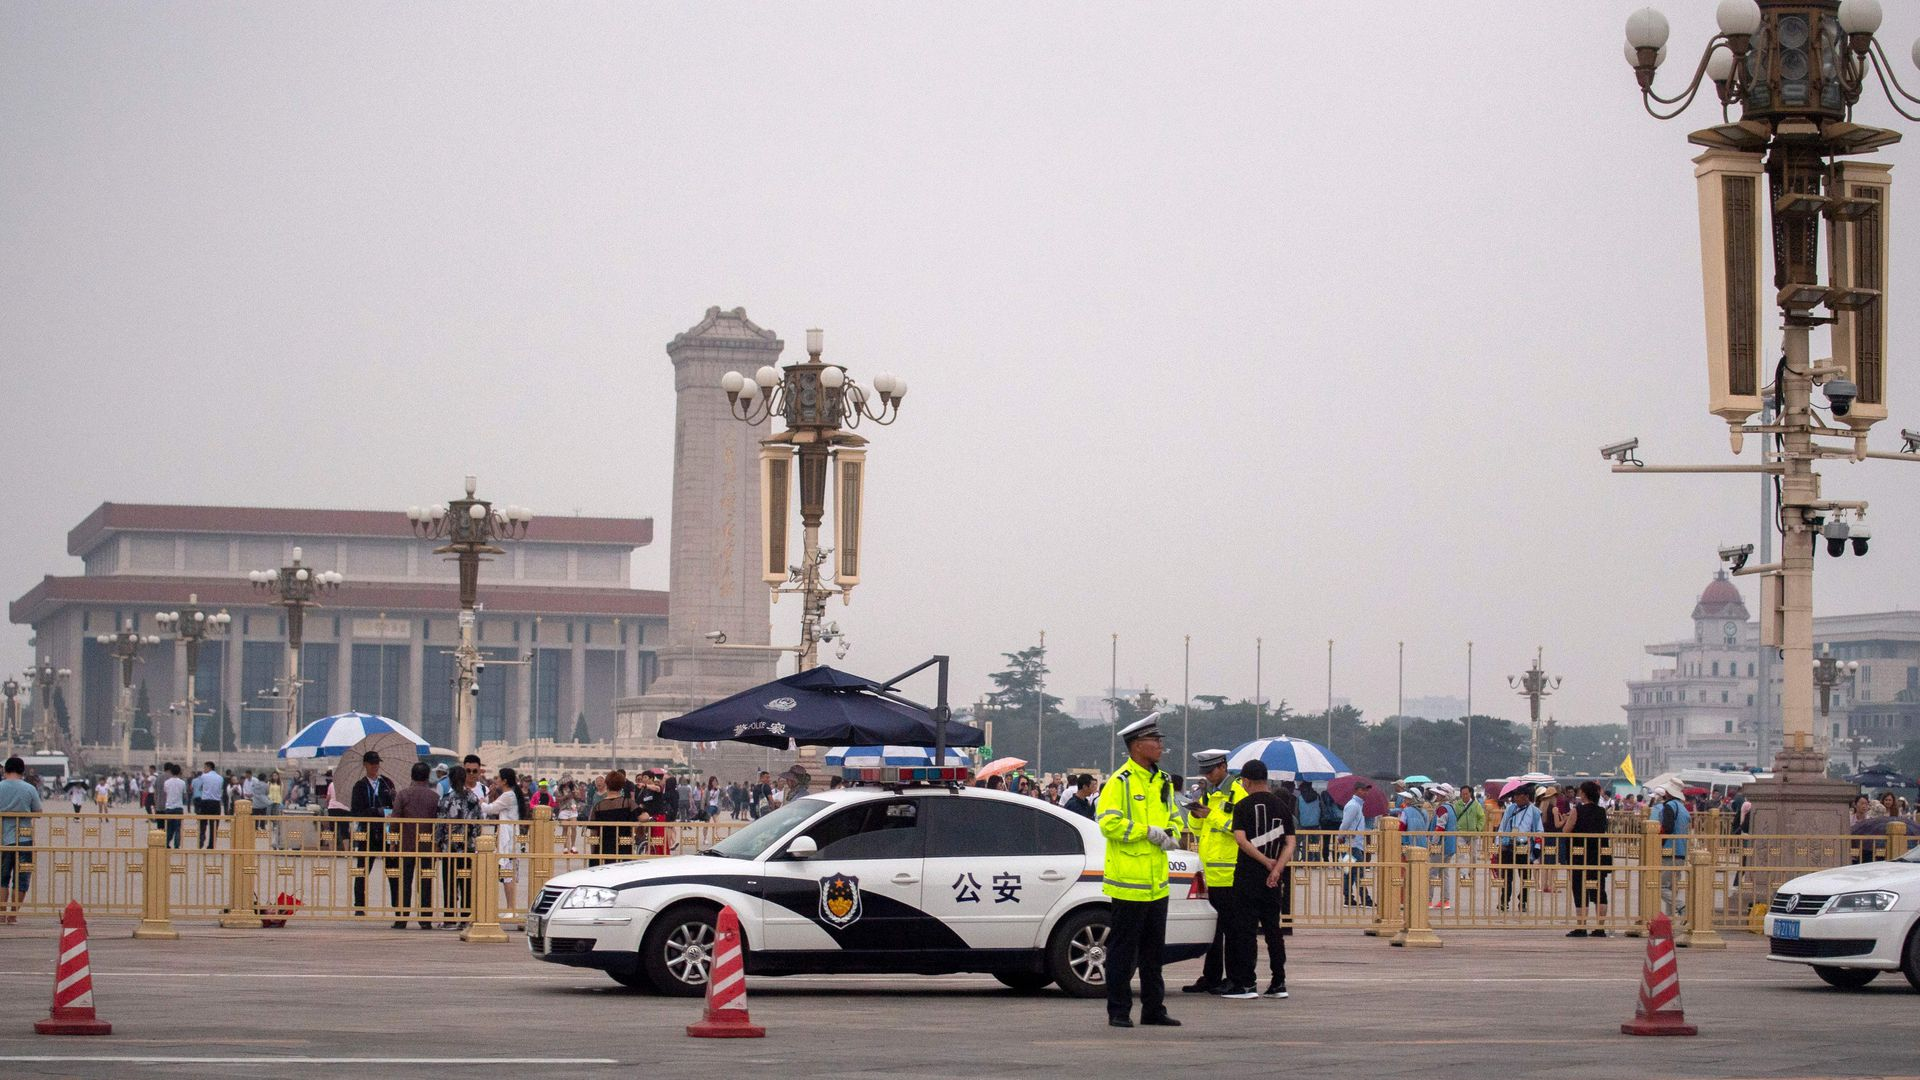 Police officers stand in front of Tiananmen Square in Beijing on June 4, 2019.